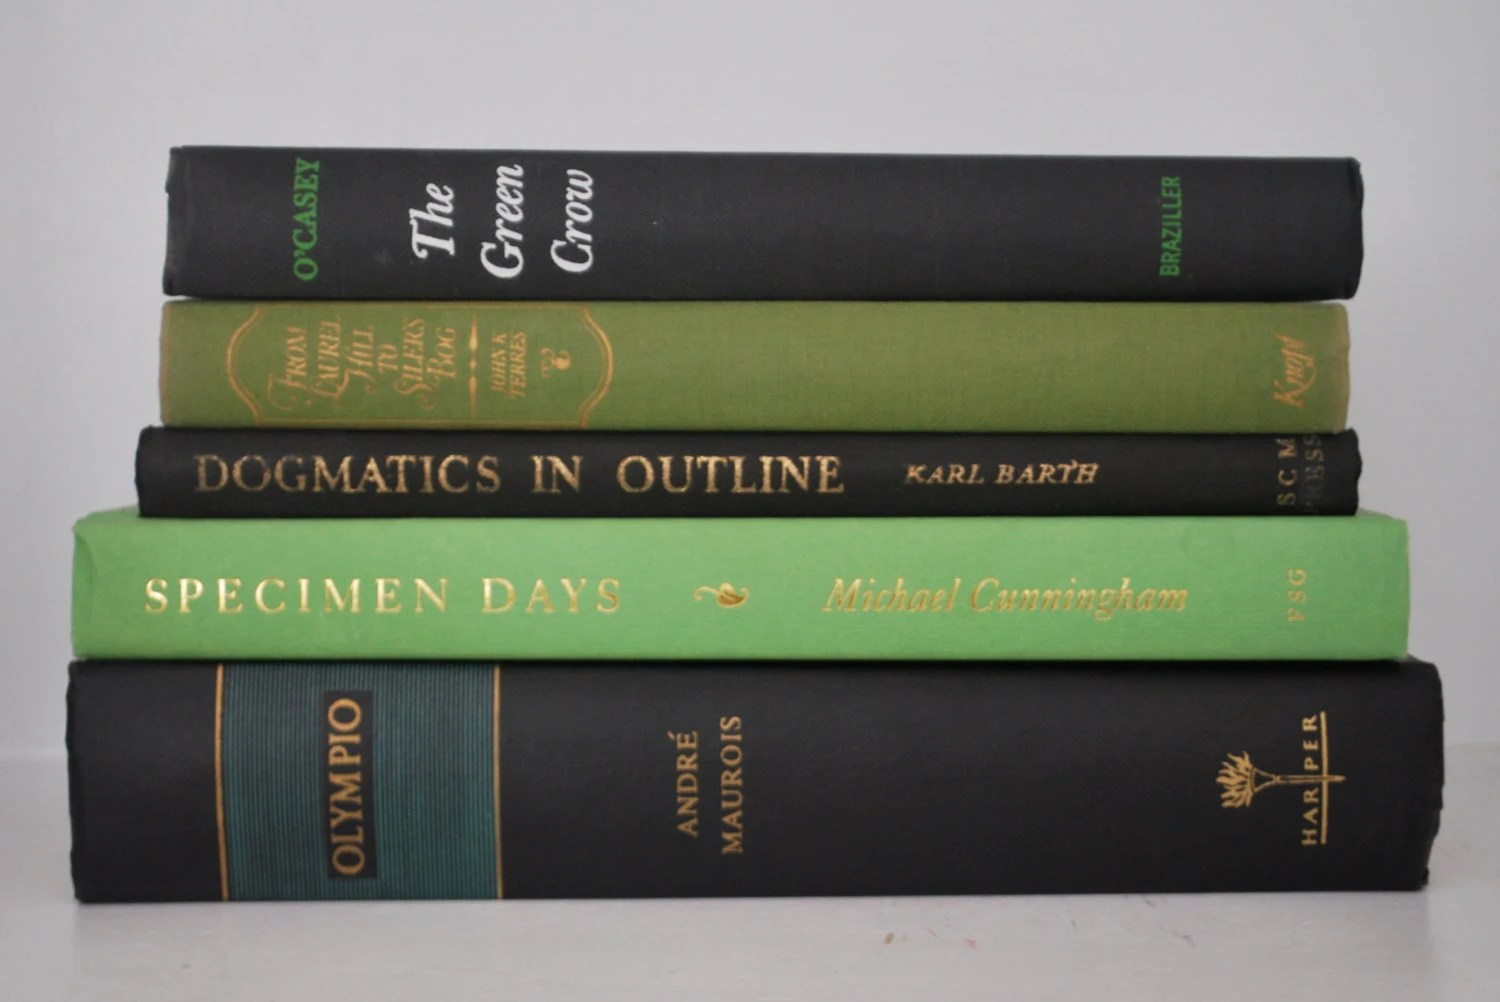 Vintage Book Collection,Hardcover,Black and Green,Home Decor,Interior Design,Decor, Library,Decorative,Book Stack,Old Books - lapetiterevival